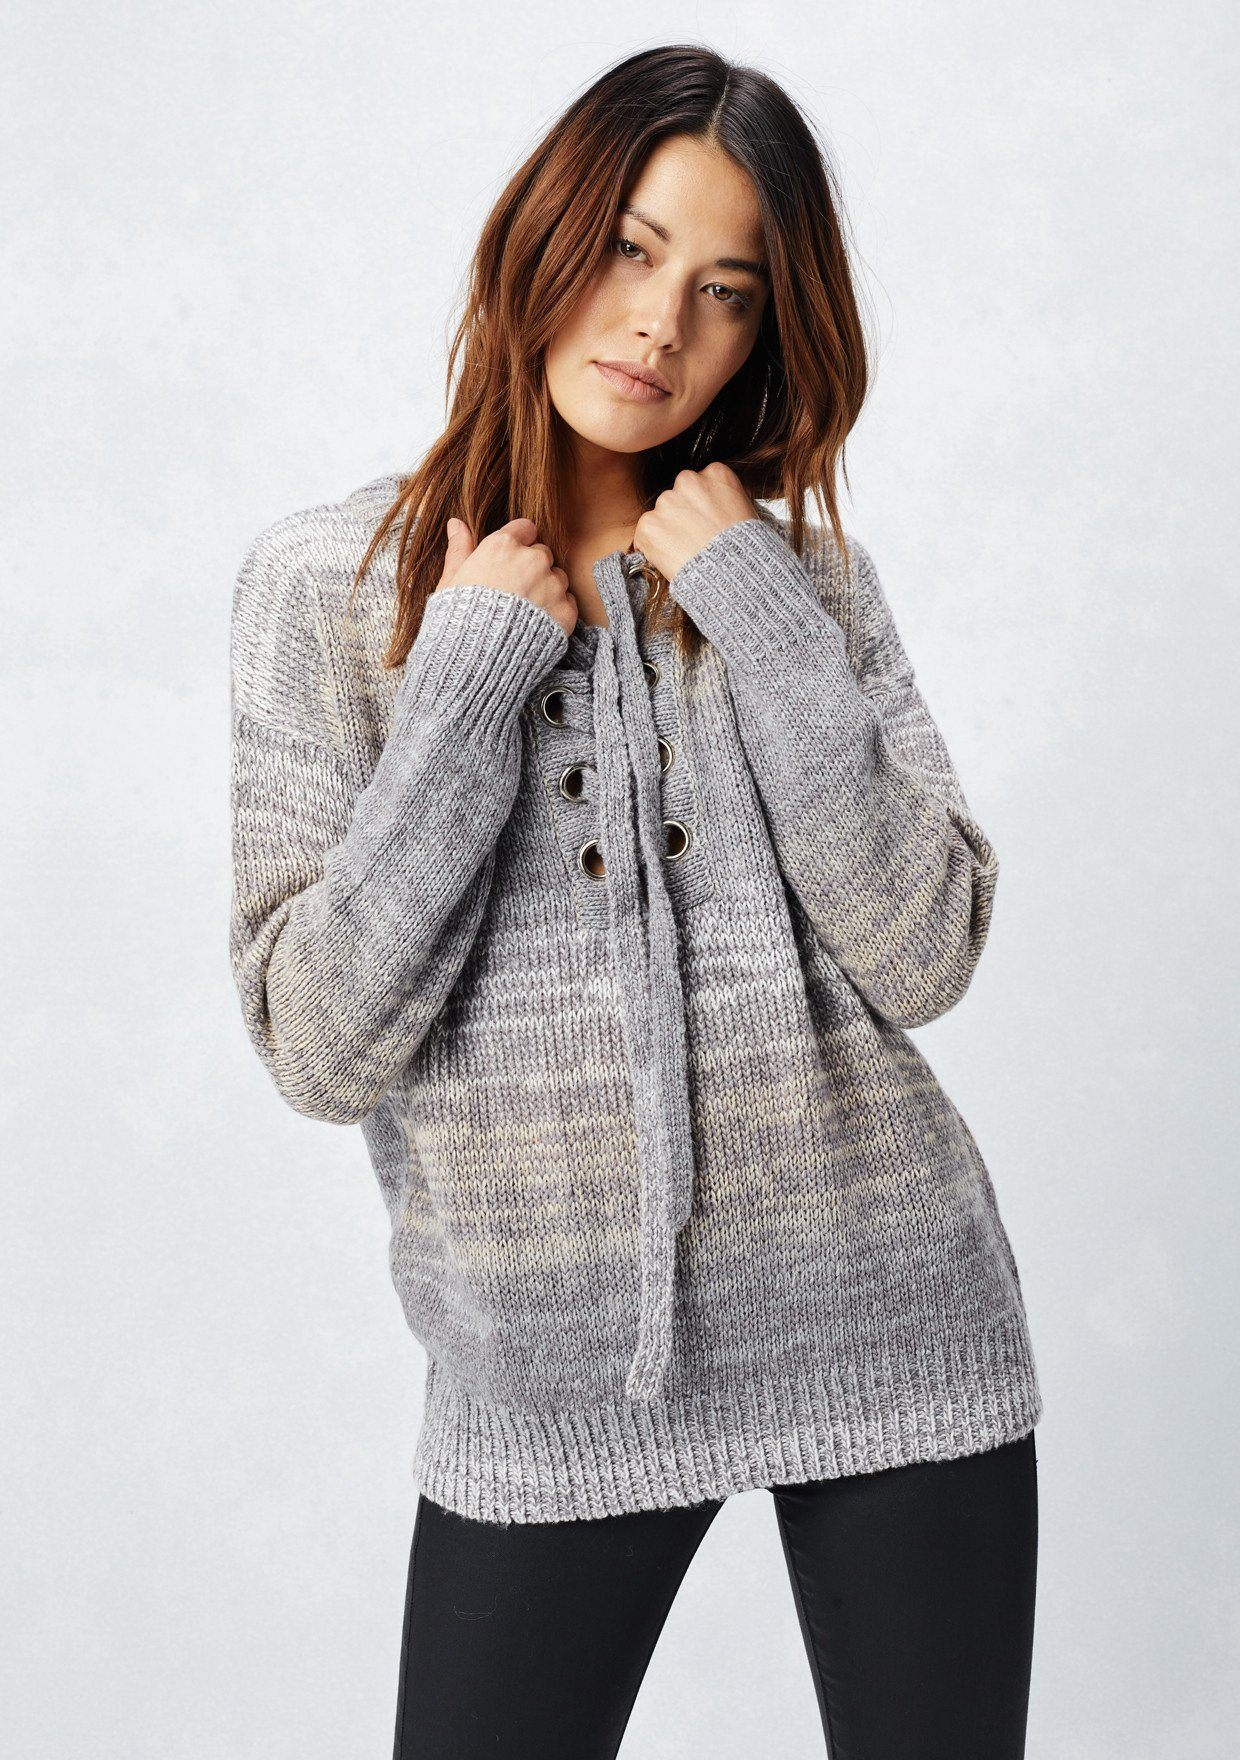 bdb386633cdea Lovestitch-lace-Up-Space-Dyed-Sweater -2 2ed0a6ff-02ce-457f-b6ce-1733c04dc965.jpg v 1546980820